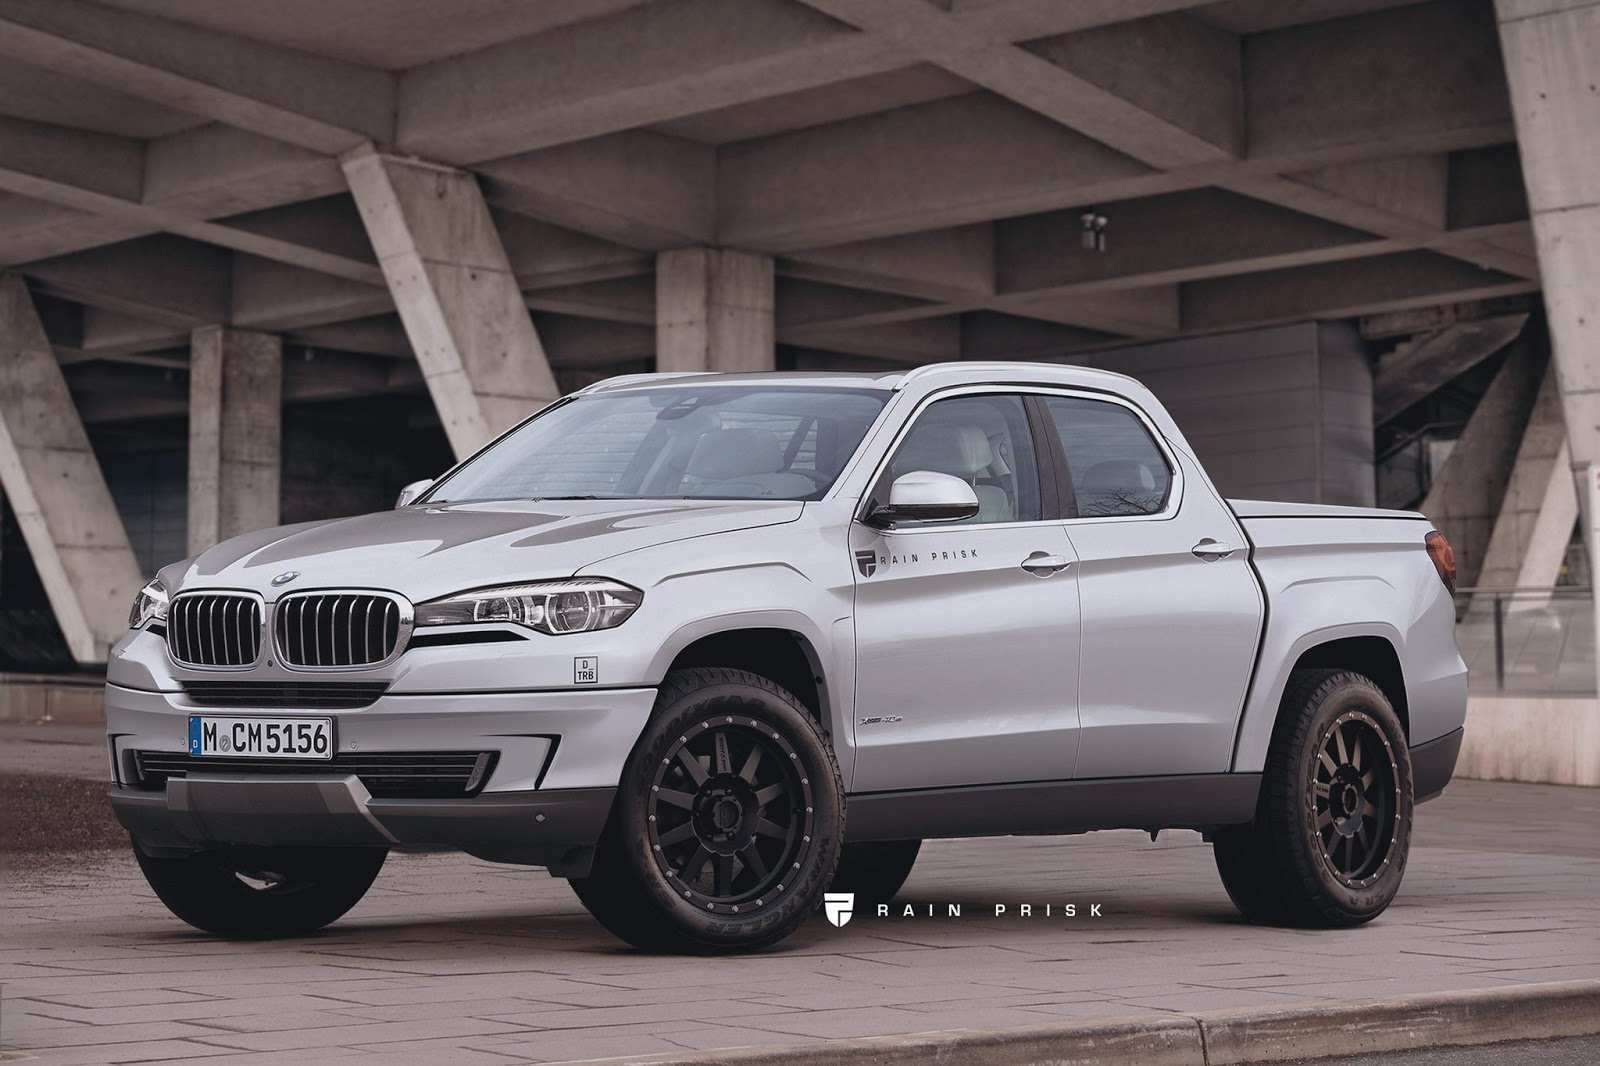 46 Concept of 2020 Bmw Pickup Research New with 2020 Bmw Pickup